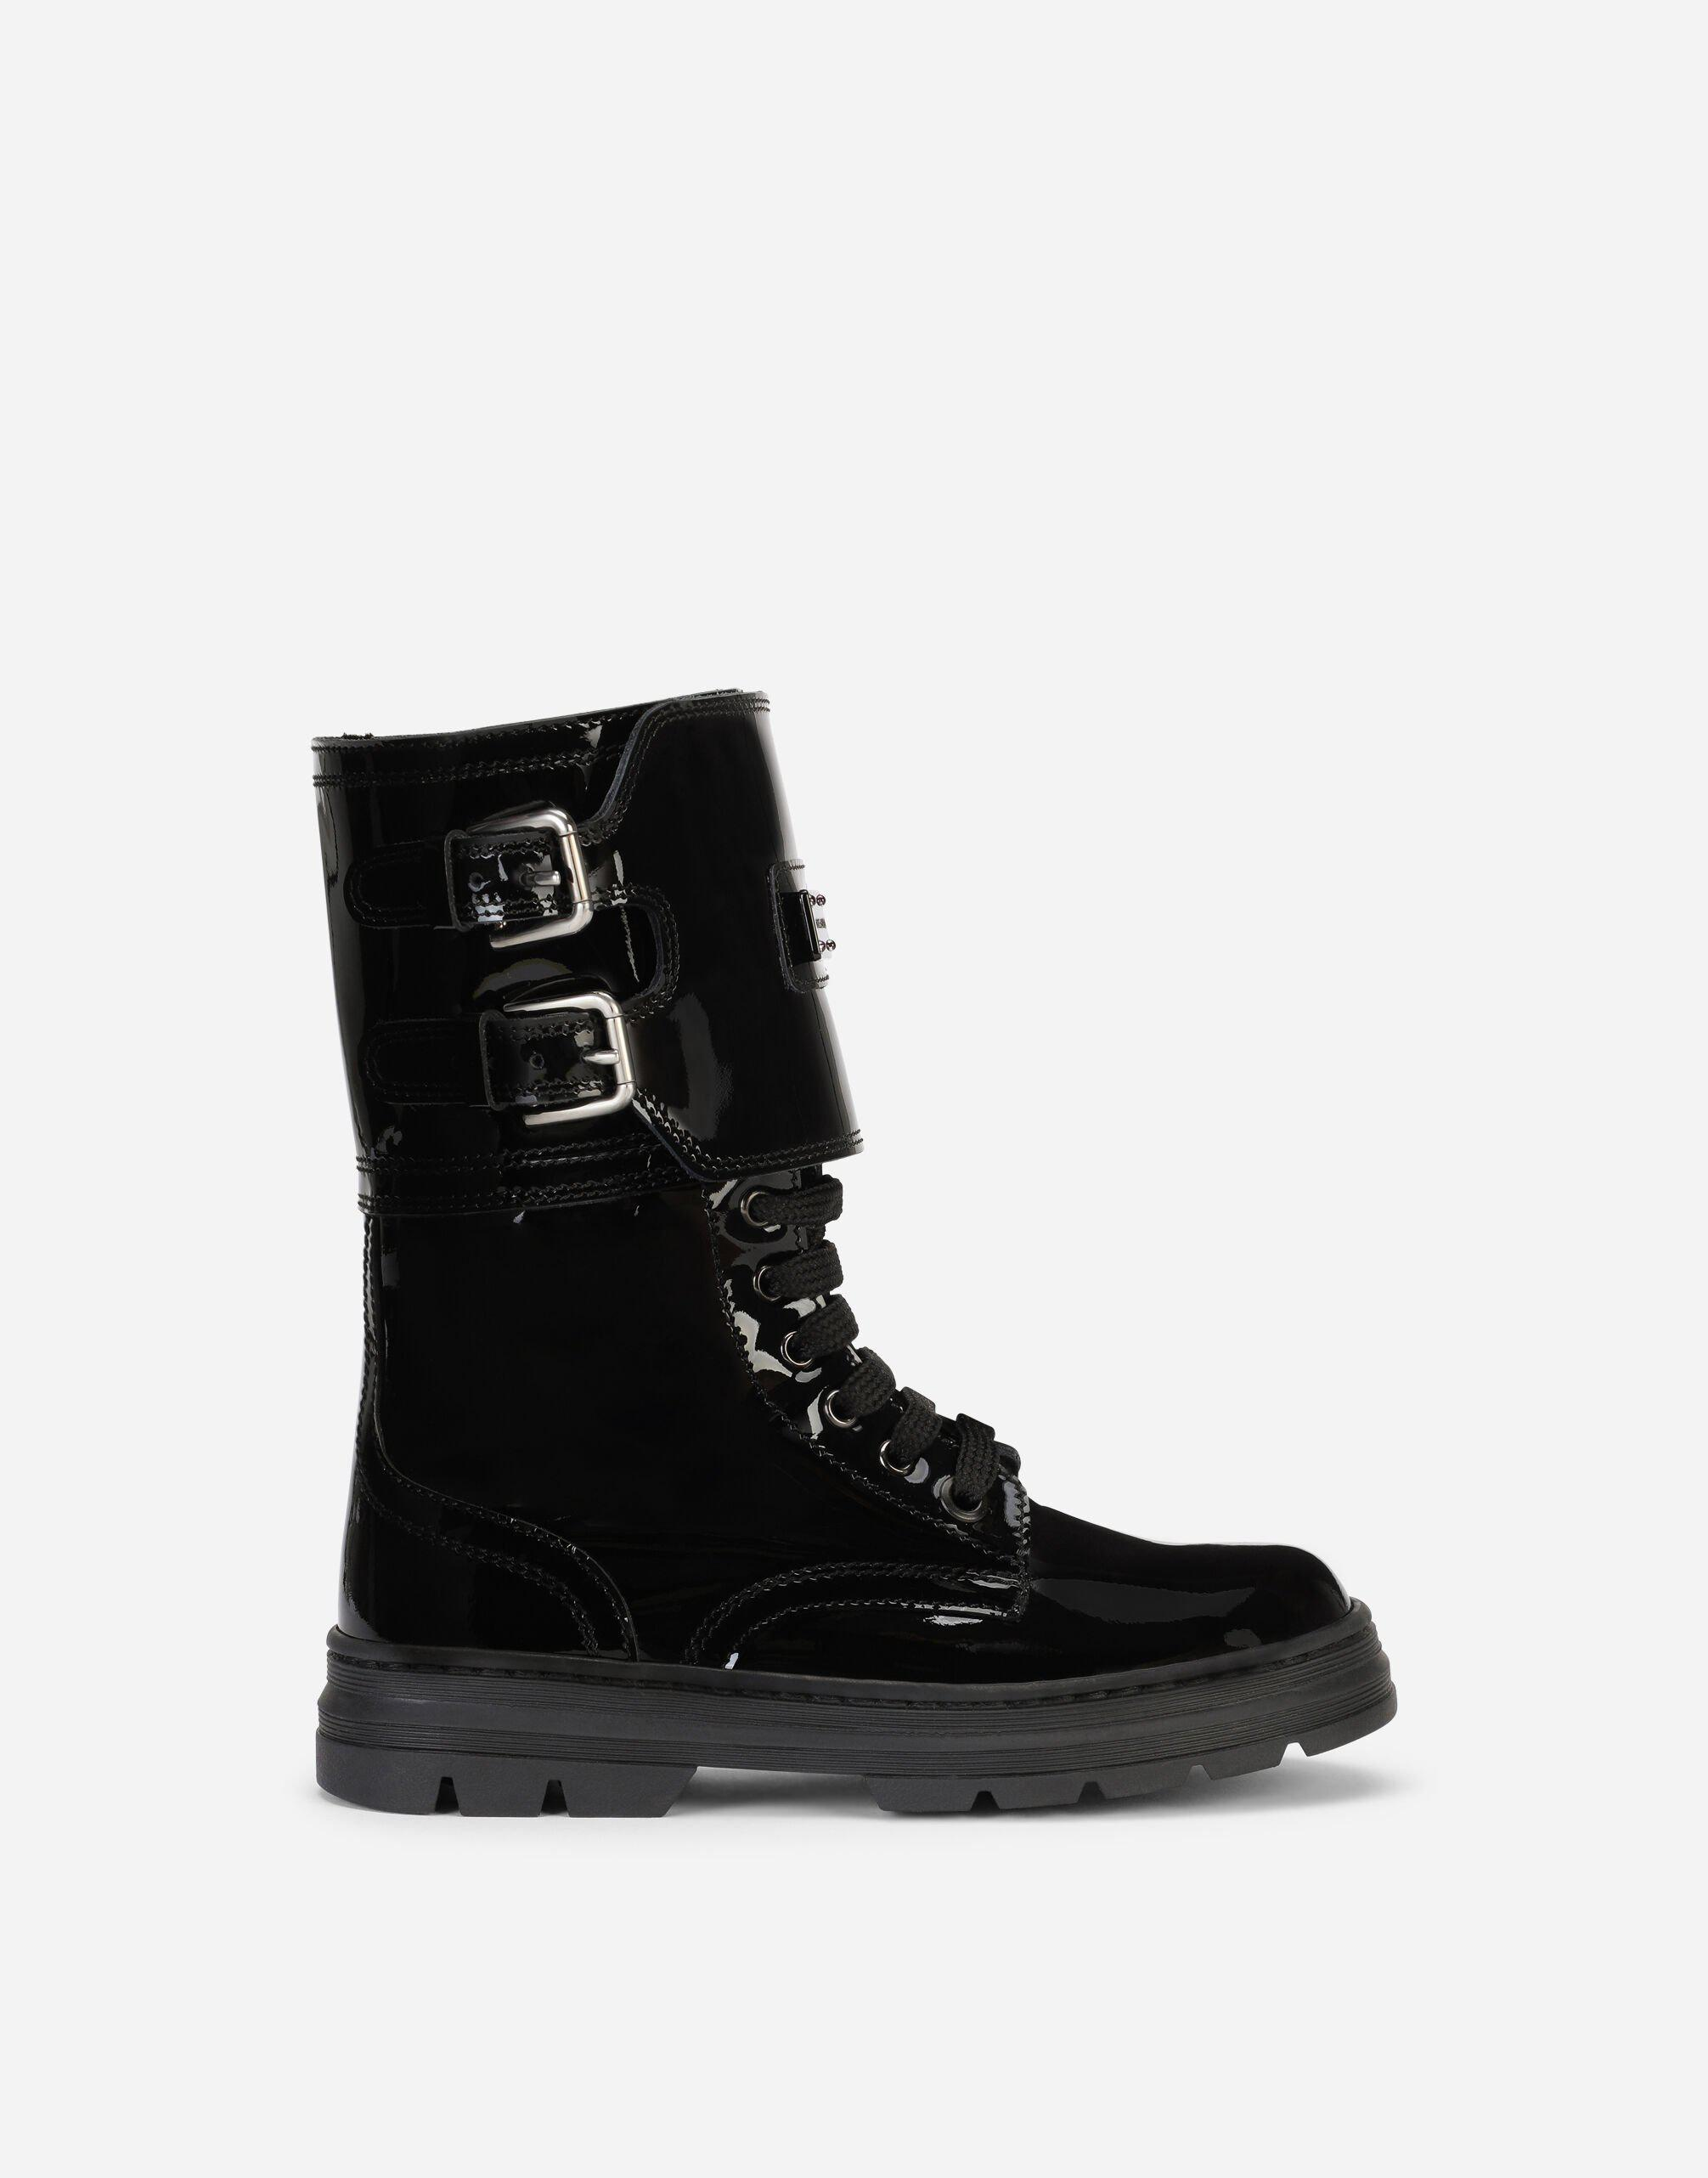 Patent leather combat boots with logo plate